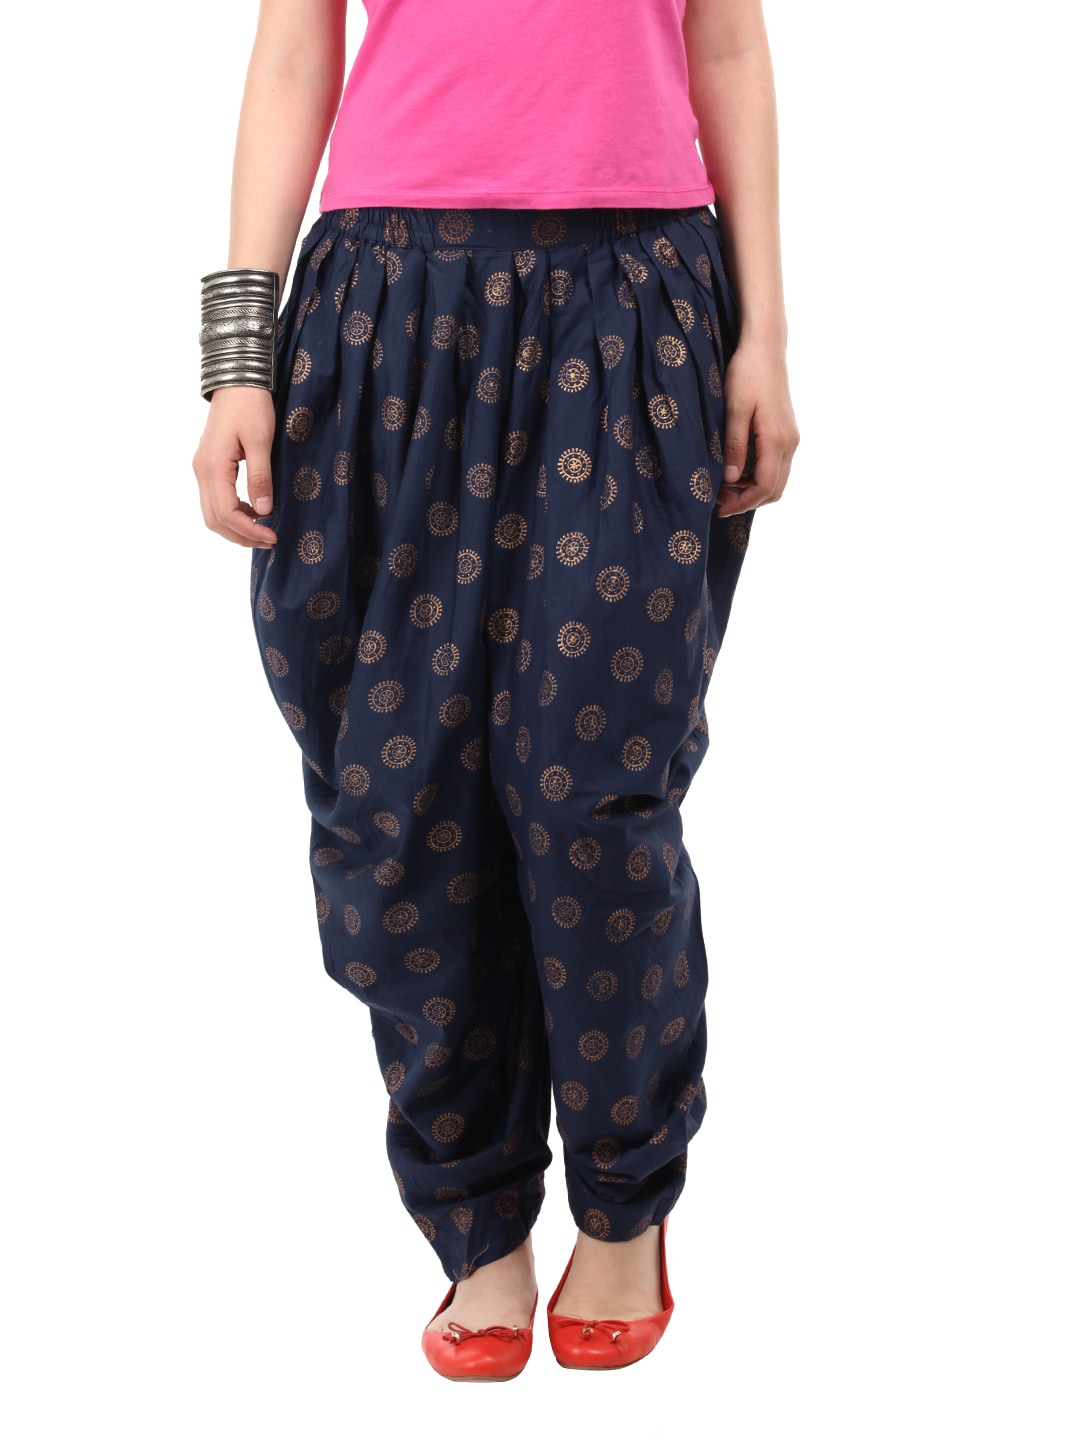 Harem Pants and Joggers for Women. Harem pants and joggers are the definition of effortless dressing. They're comfortable and cool, yet perfectly polished. It's not every day that a casual style can translate to a look this instantly trendy. Season after season we continue to .